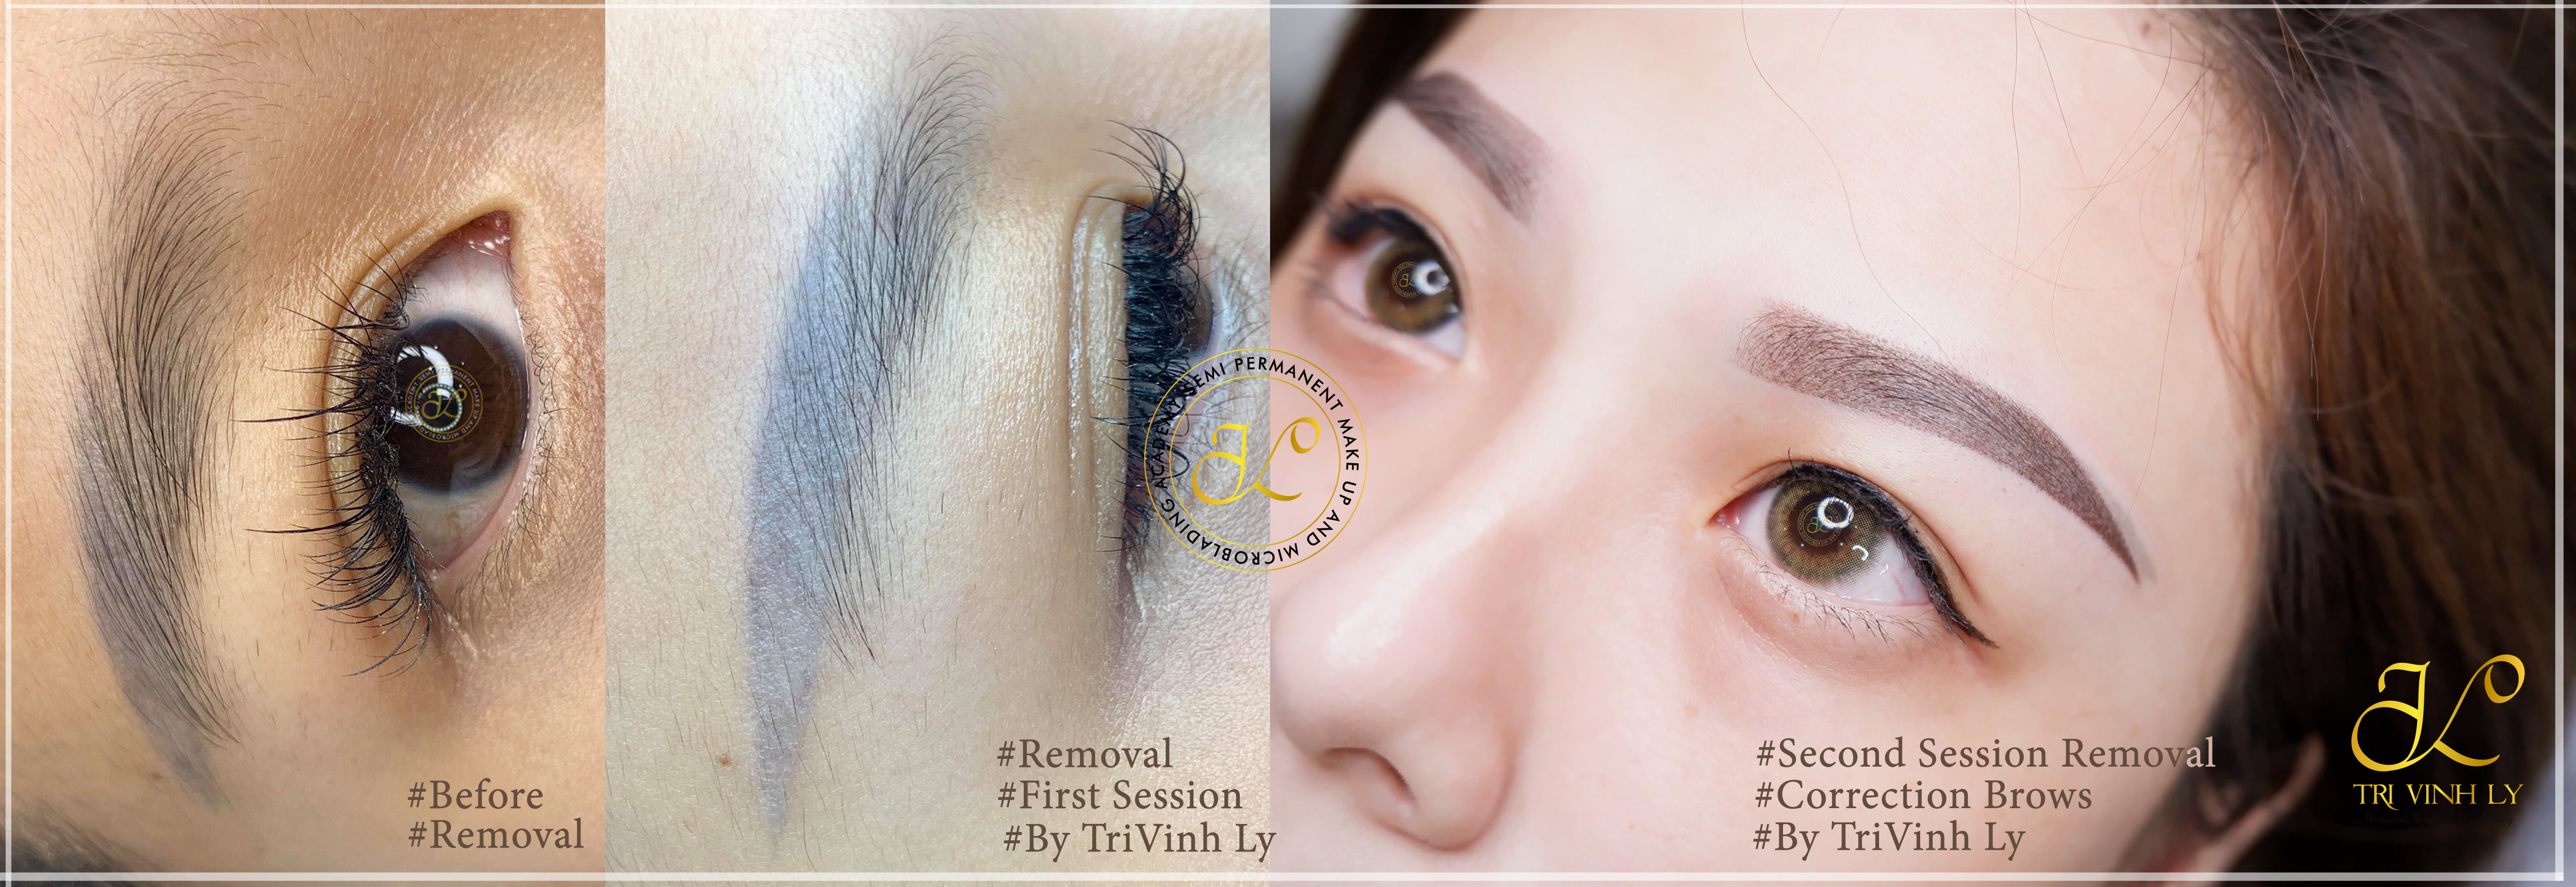 Removal 2 session - Correction Brows - TVL PMU ACADEMY - Trivinh Ly Instructor - tvlpmuacademy.us